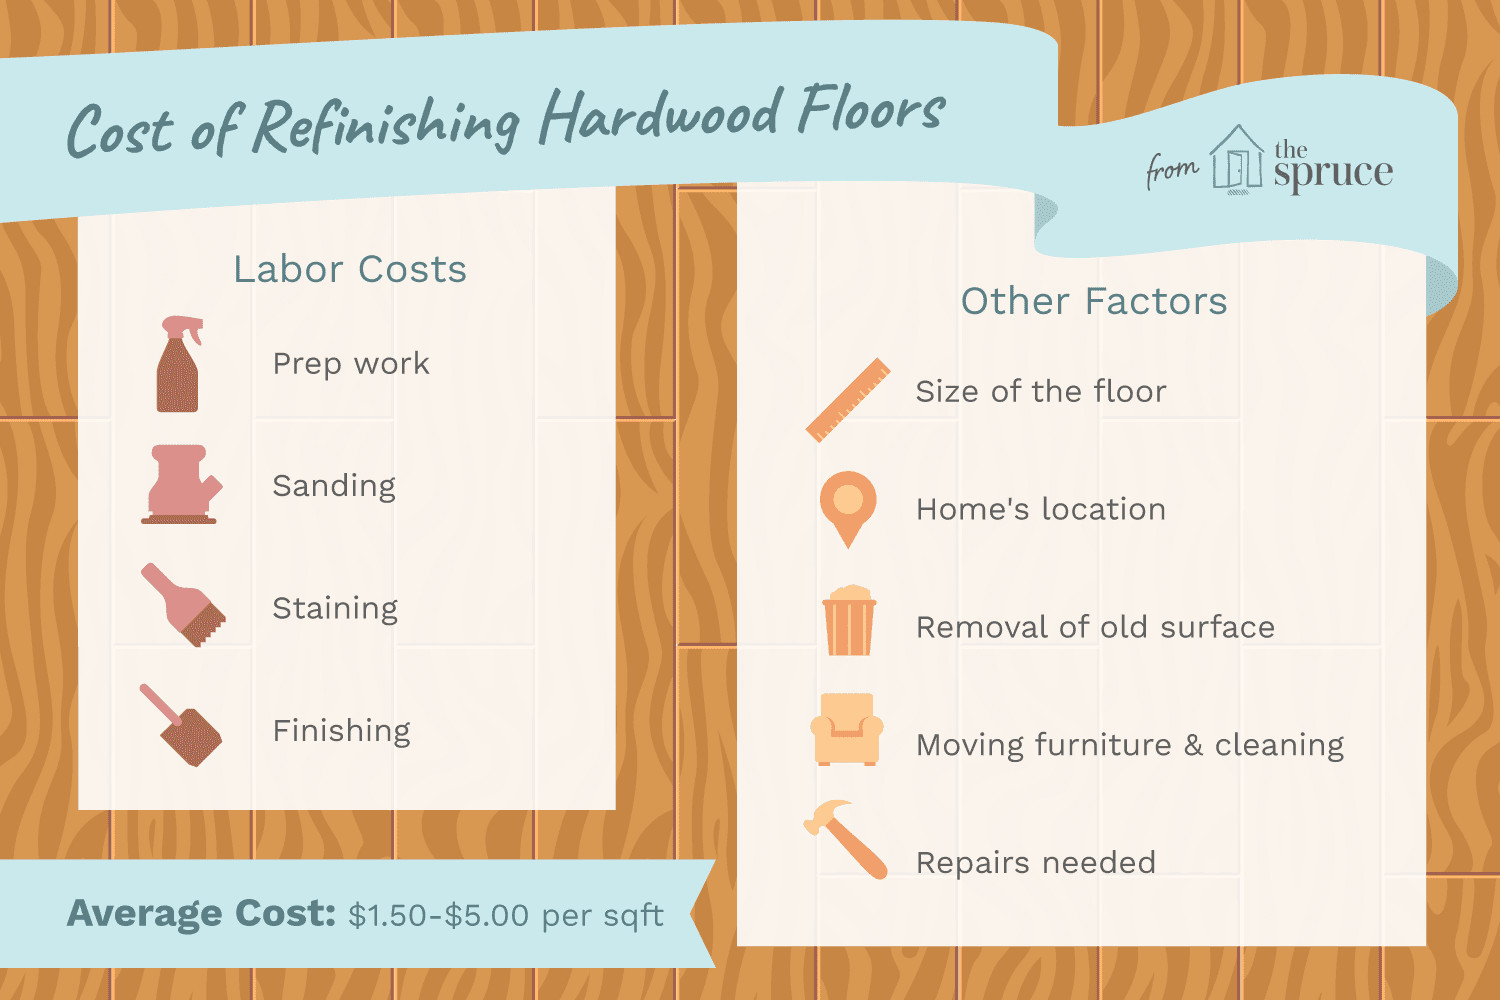 How Much Does It Cost to Lay Hardwood Floors Of the Cost to Refinish Hardwood Floors Throughout Cost to Refinish Hardwood Floors 1314853 Final 5bb6259346e0fb0026825ce2